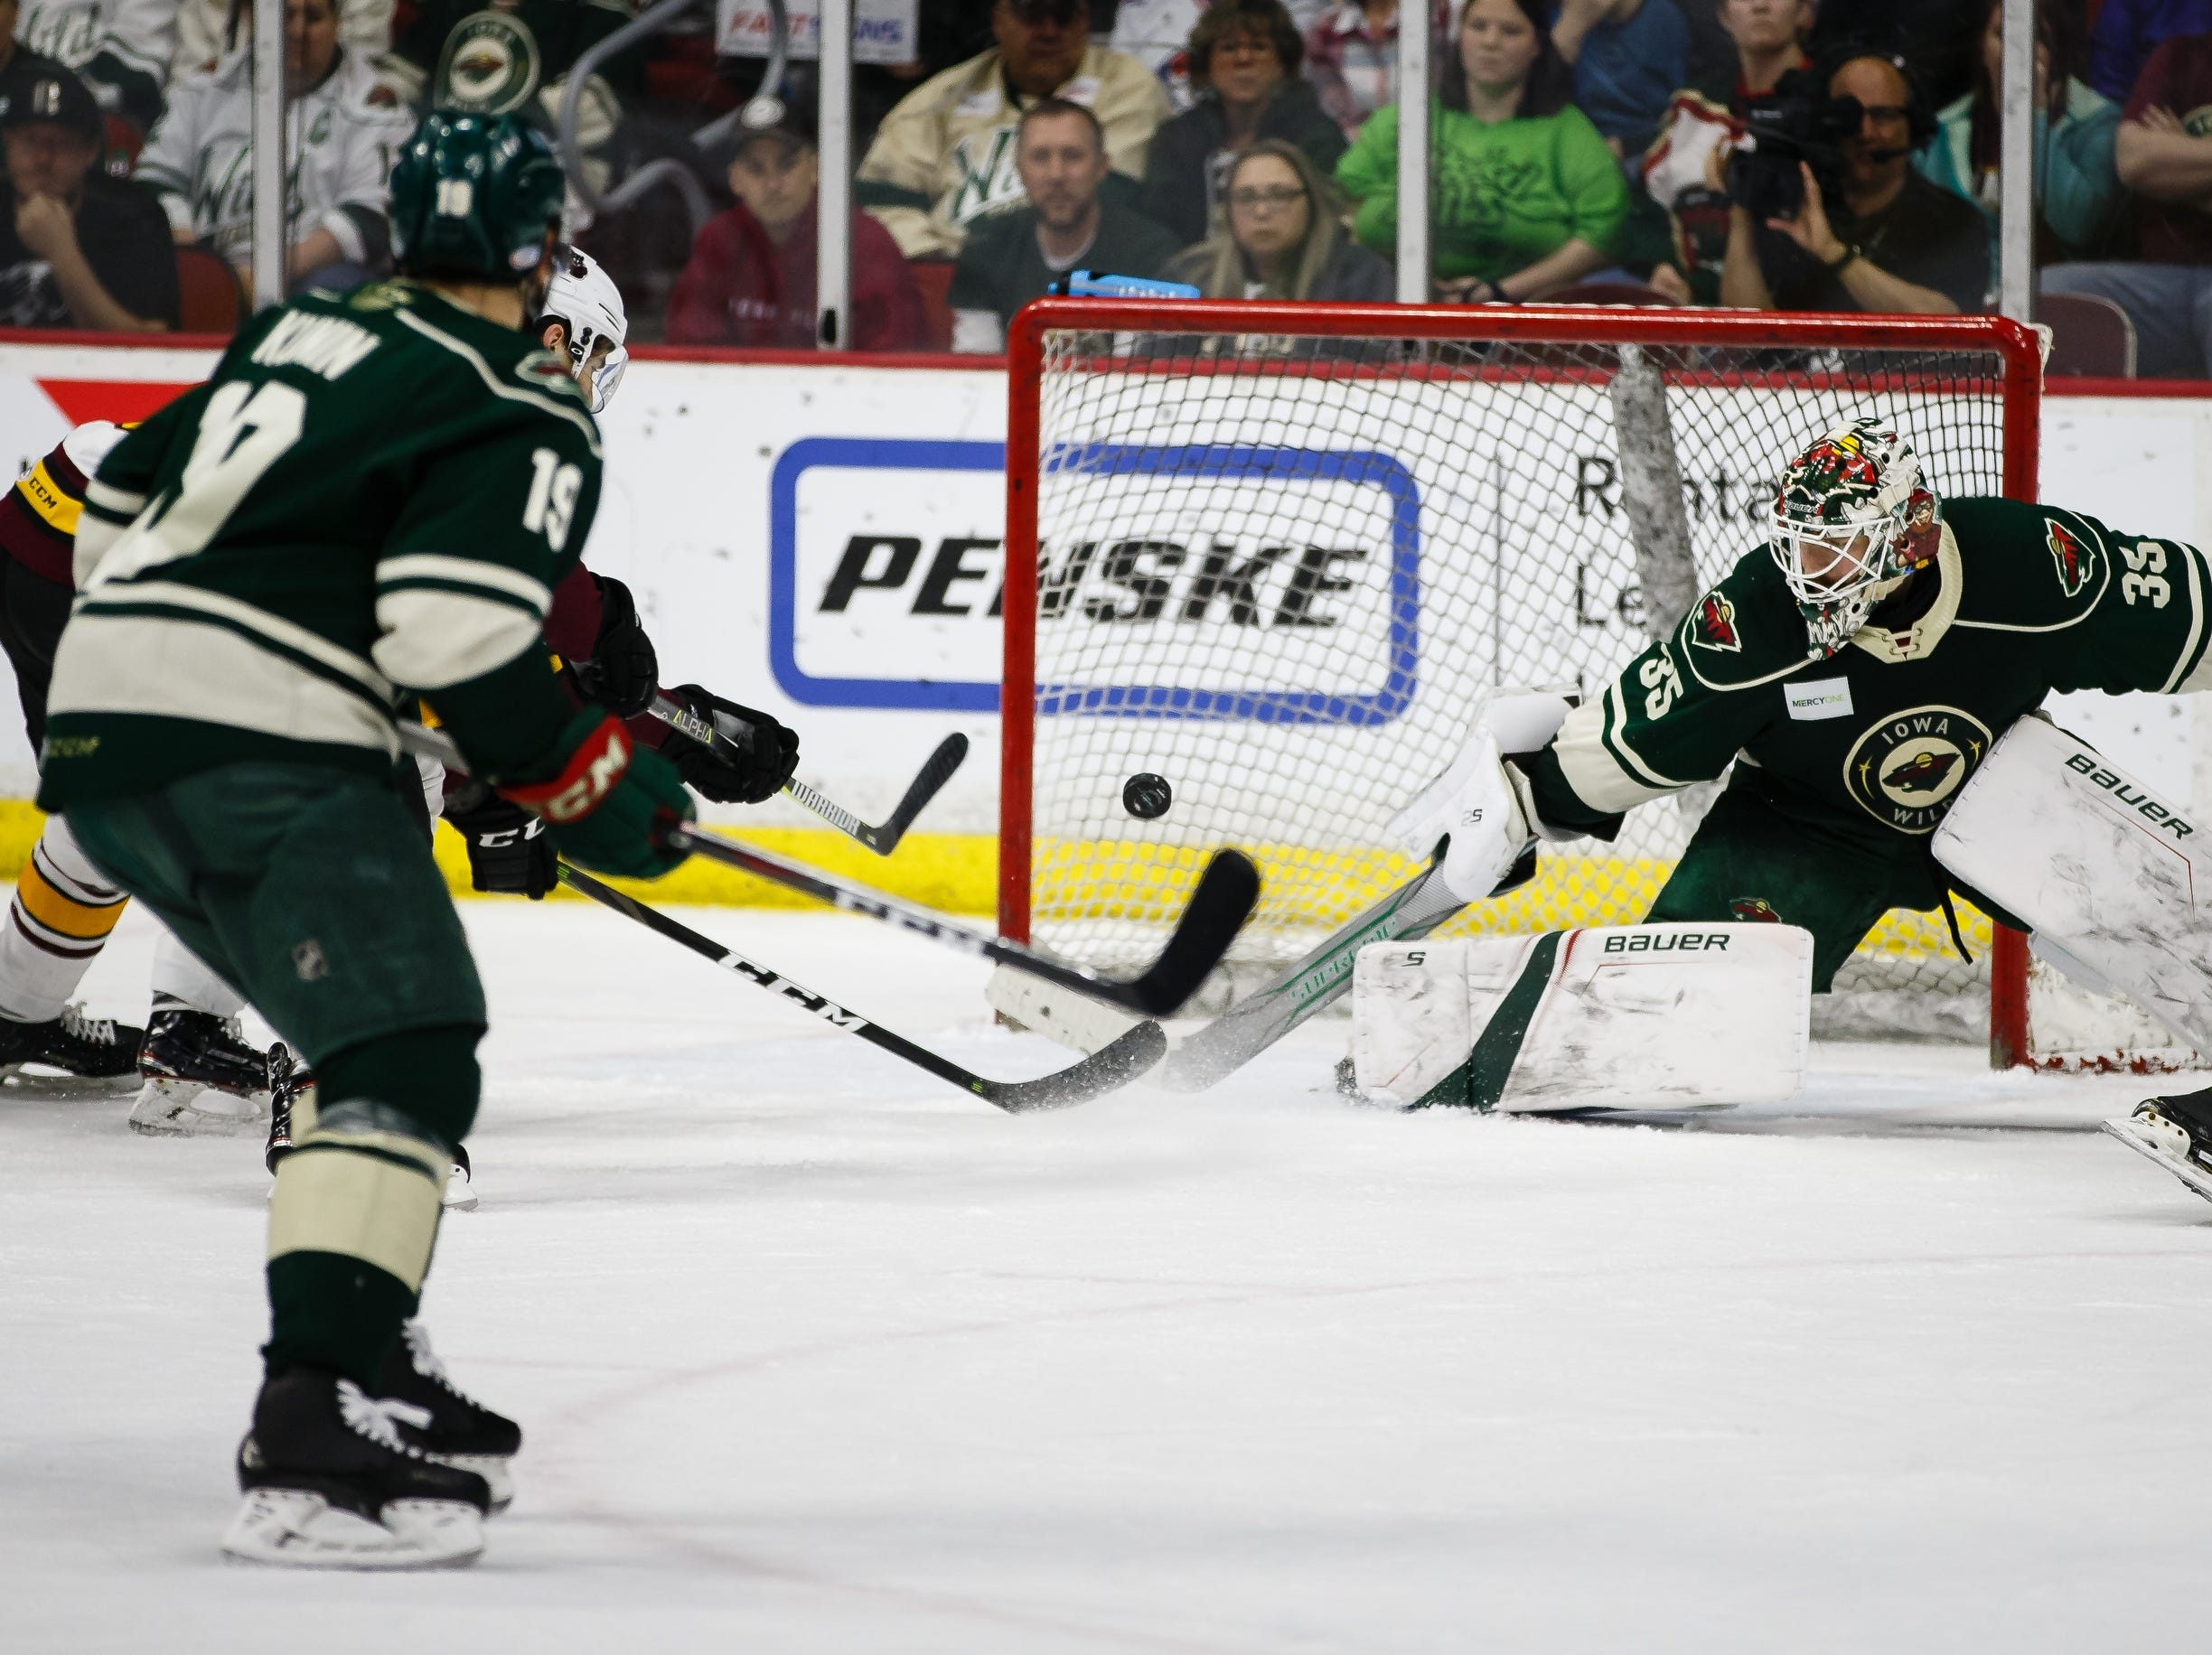 Iowa Wild goalie Andrew Hammond makes a save during Friday's second period of their Calder Cup playoff hockey game against the Chicago Wolves on Friday at Wells Fargo Arena. Hammond madejust 22 saves as the Wolves won 7-4.